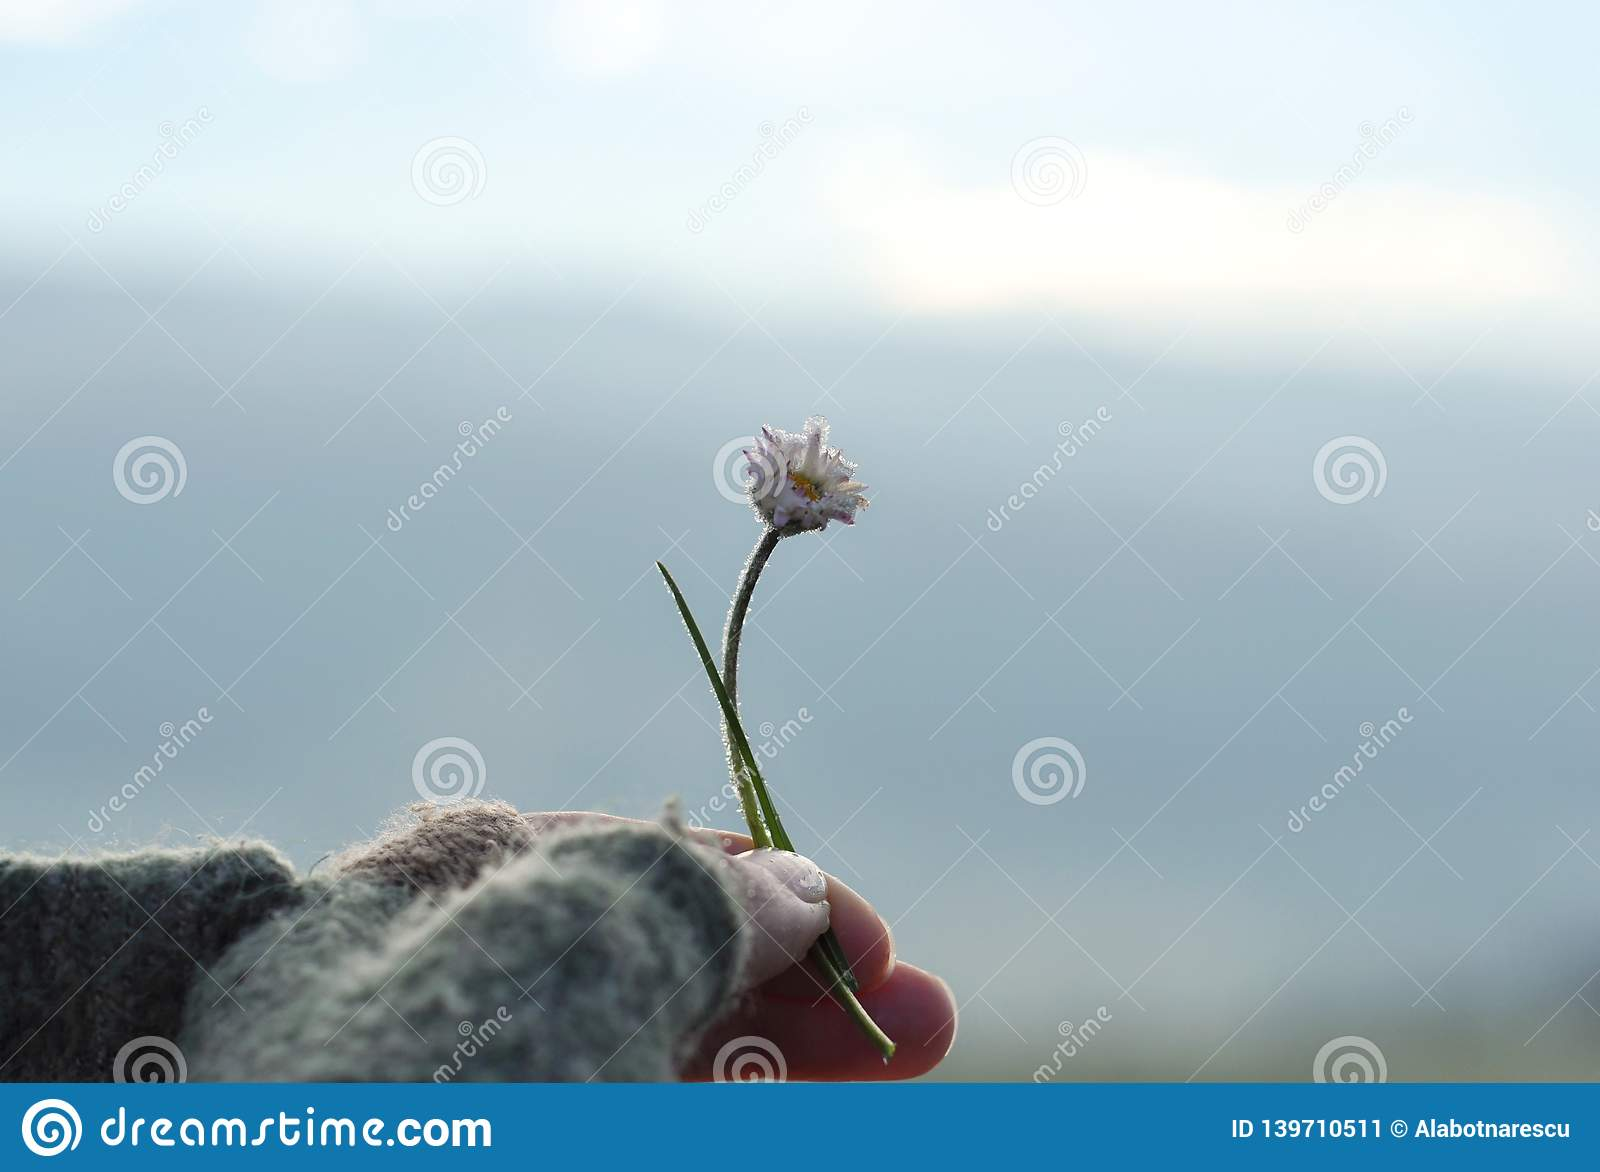 Girl with glove hand holding a beautiful white Daisy on the horizont. Beautiful tranquil nature represent peaceful moment